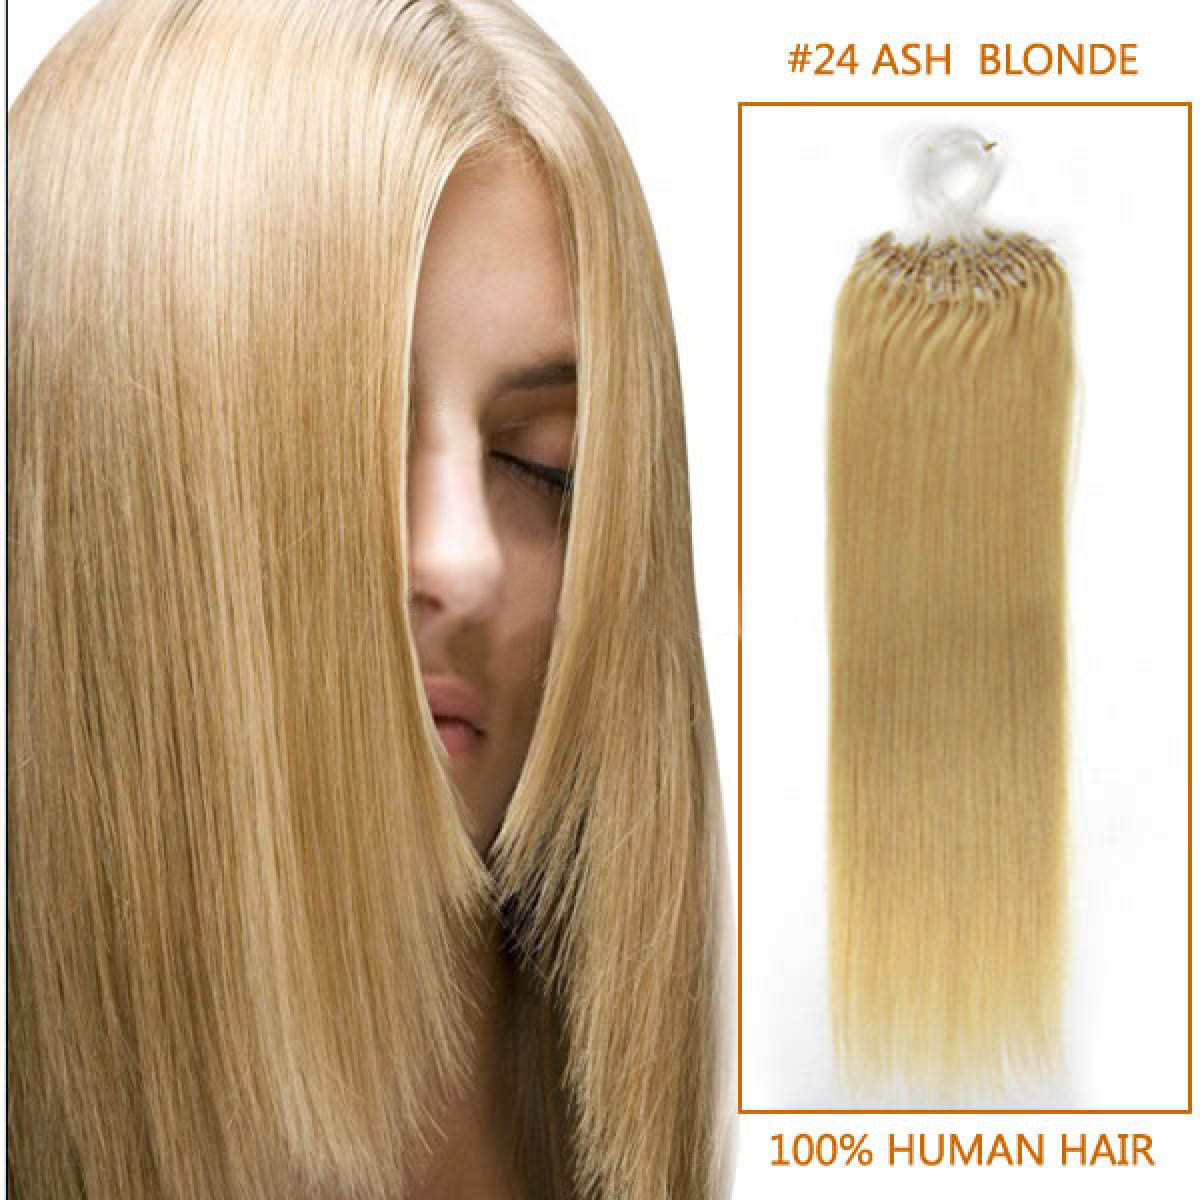 18 Inch 24 Ash Blonde Micro Loop Human Hair Extensions 100s